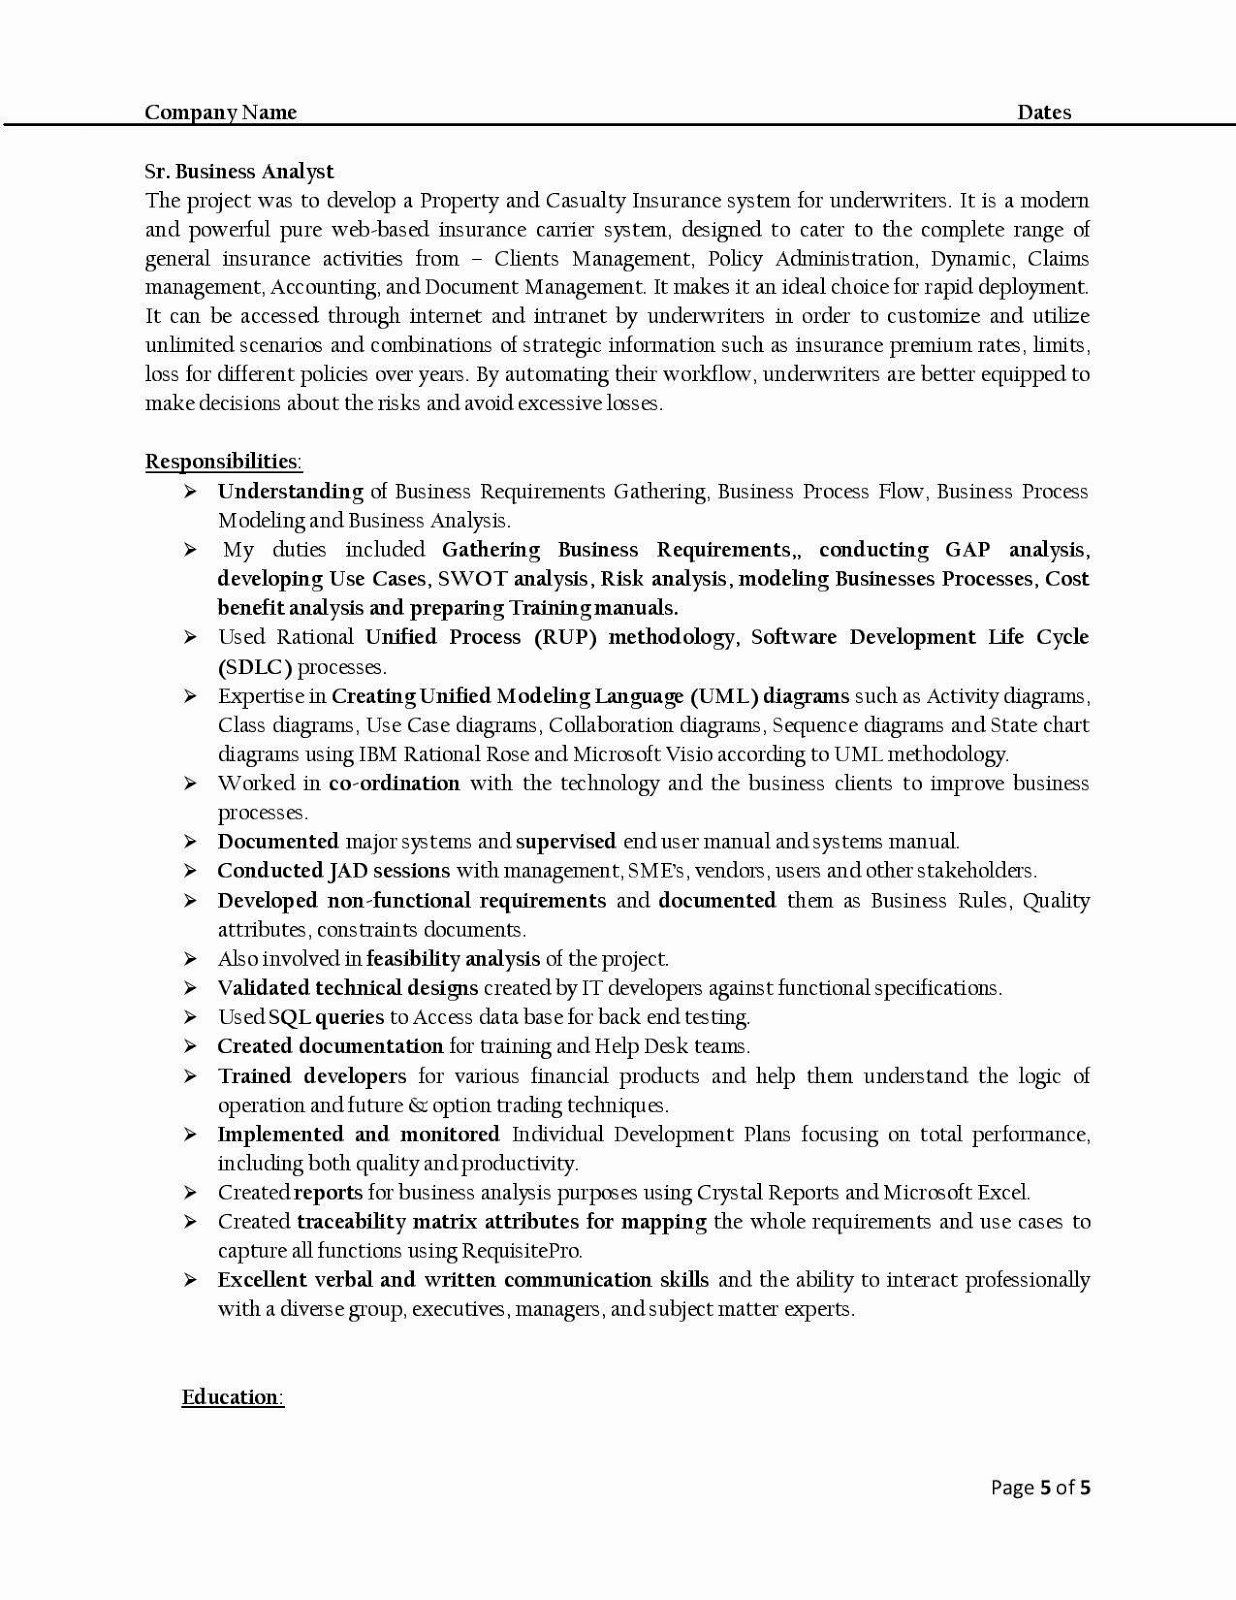 Sample Business Analyst Resume Luxury H1b Sponsoring Desi Consultancies In The United States Business Analyst Resume Business Analyst Standard Resume Format